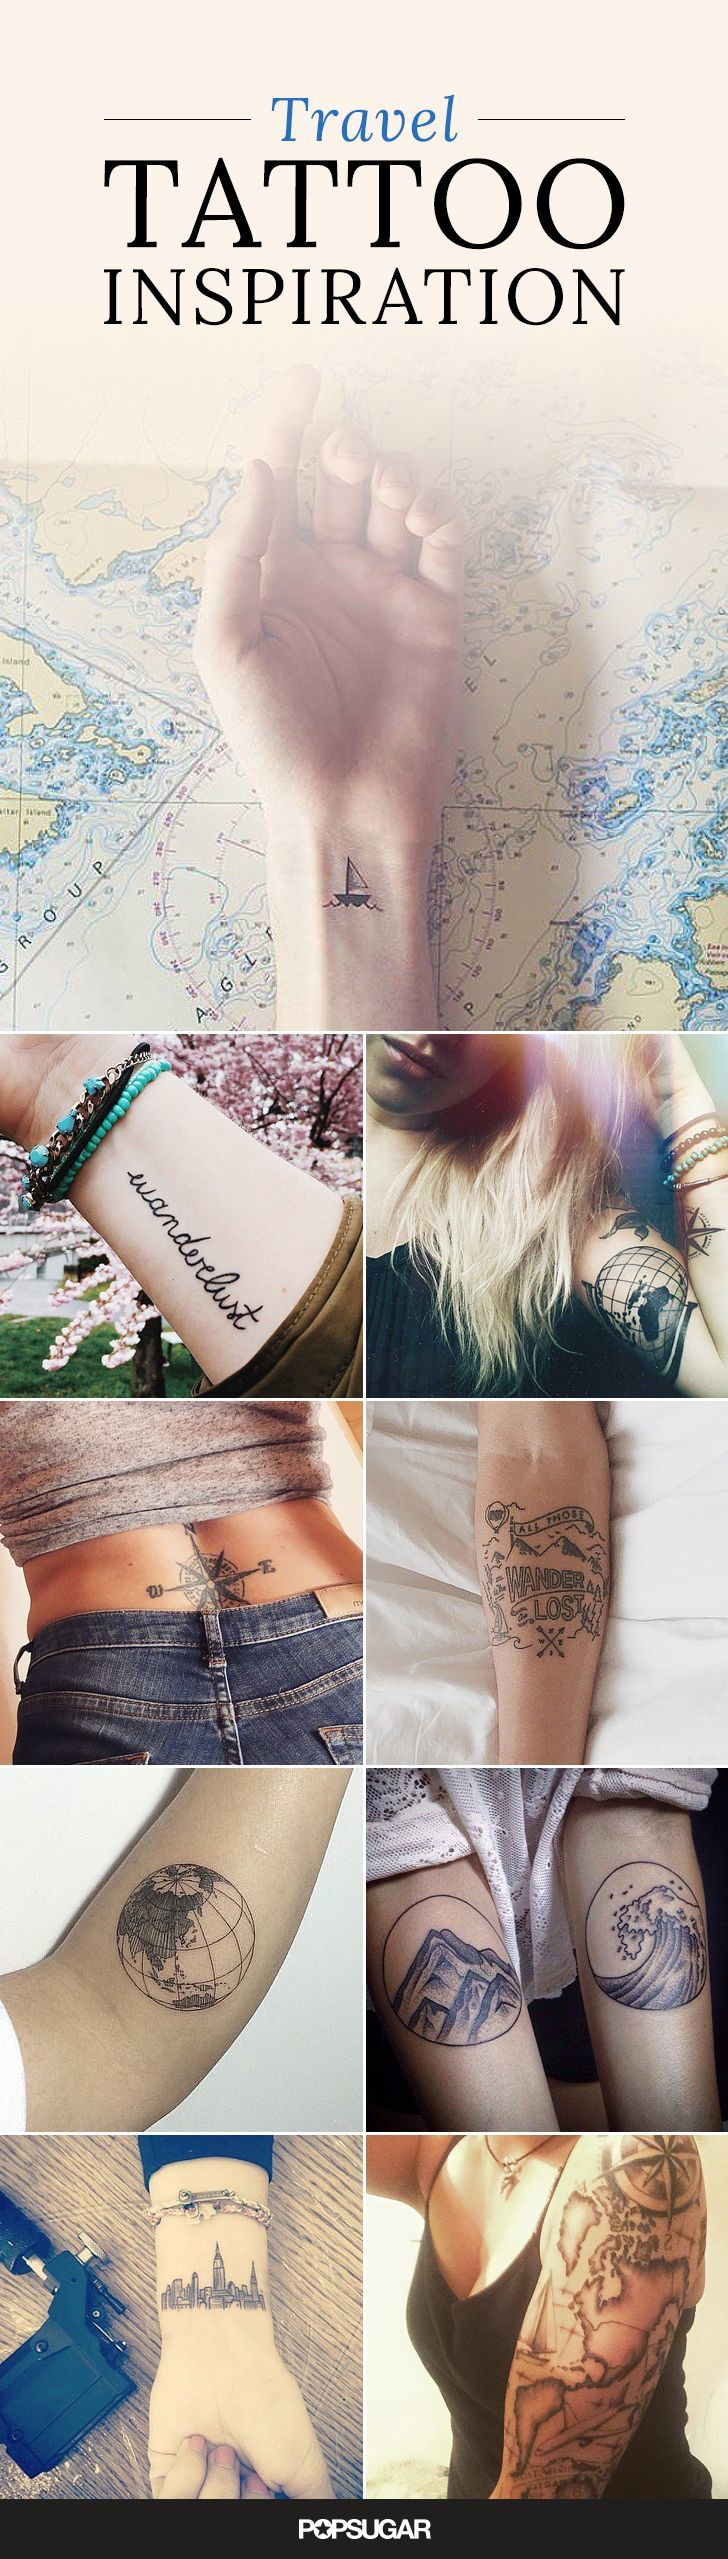 35 unique travel tattoos to fuel your eternal wanderlust original